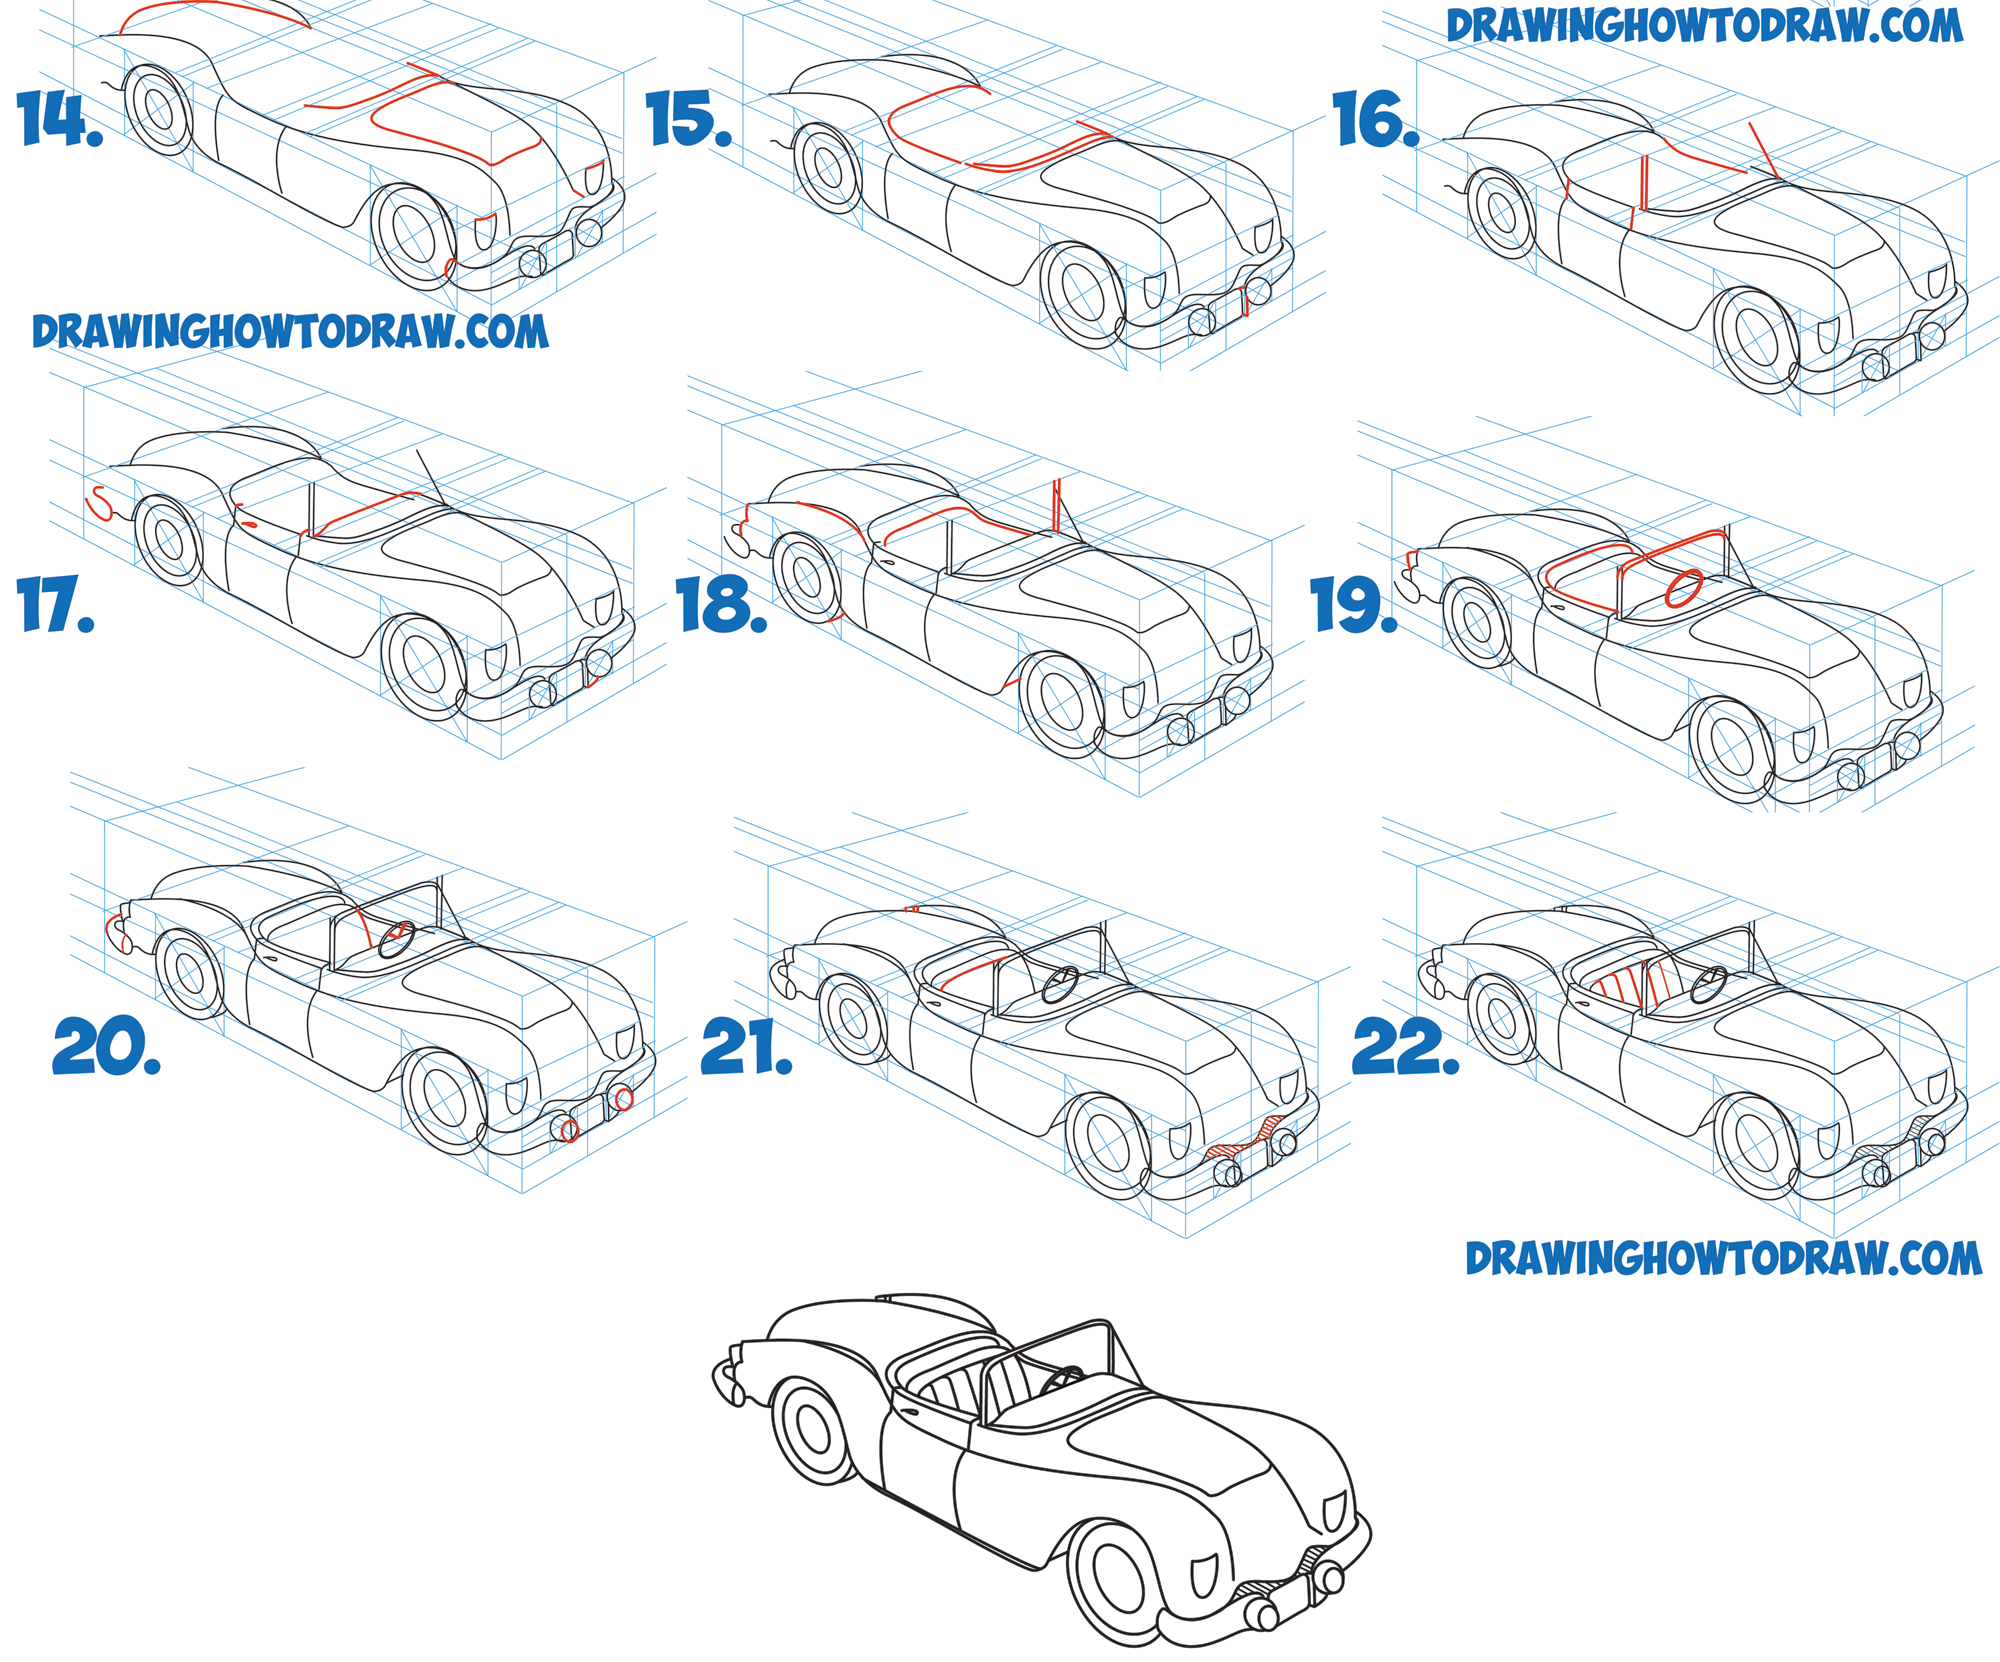 Learn How to Draw a Car Convertible in 2 Pt Perspective in Simple Steps Drawing Lesson for Beginners and Intermediate Artists